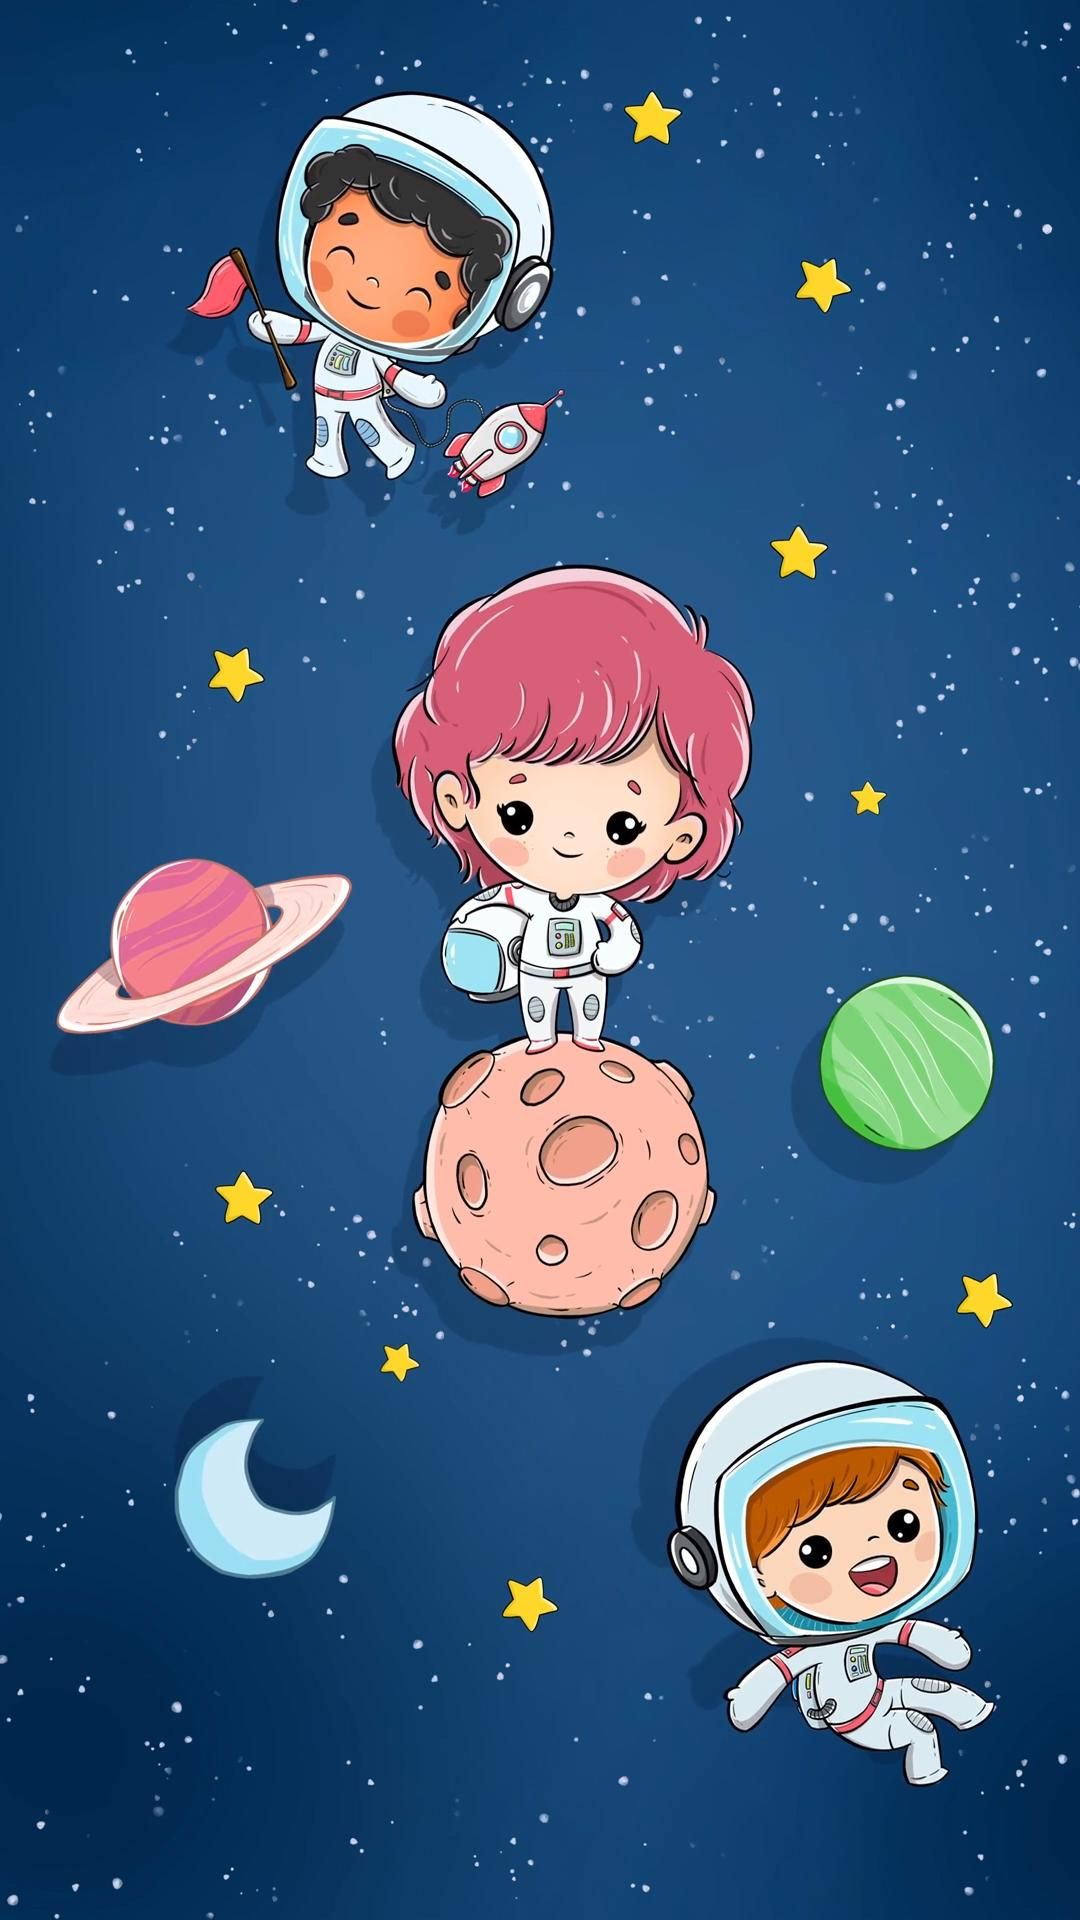 Children floating in space in astronaut suits with planets and stars